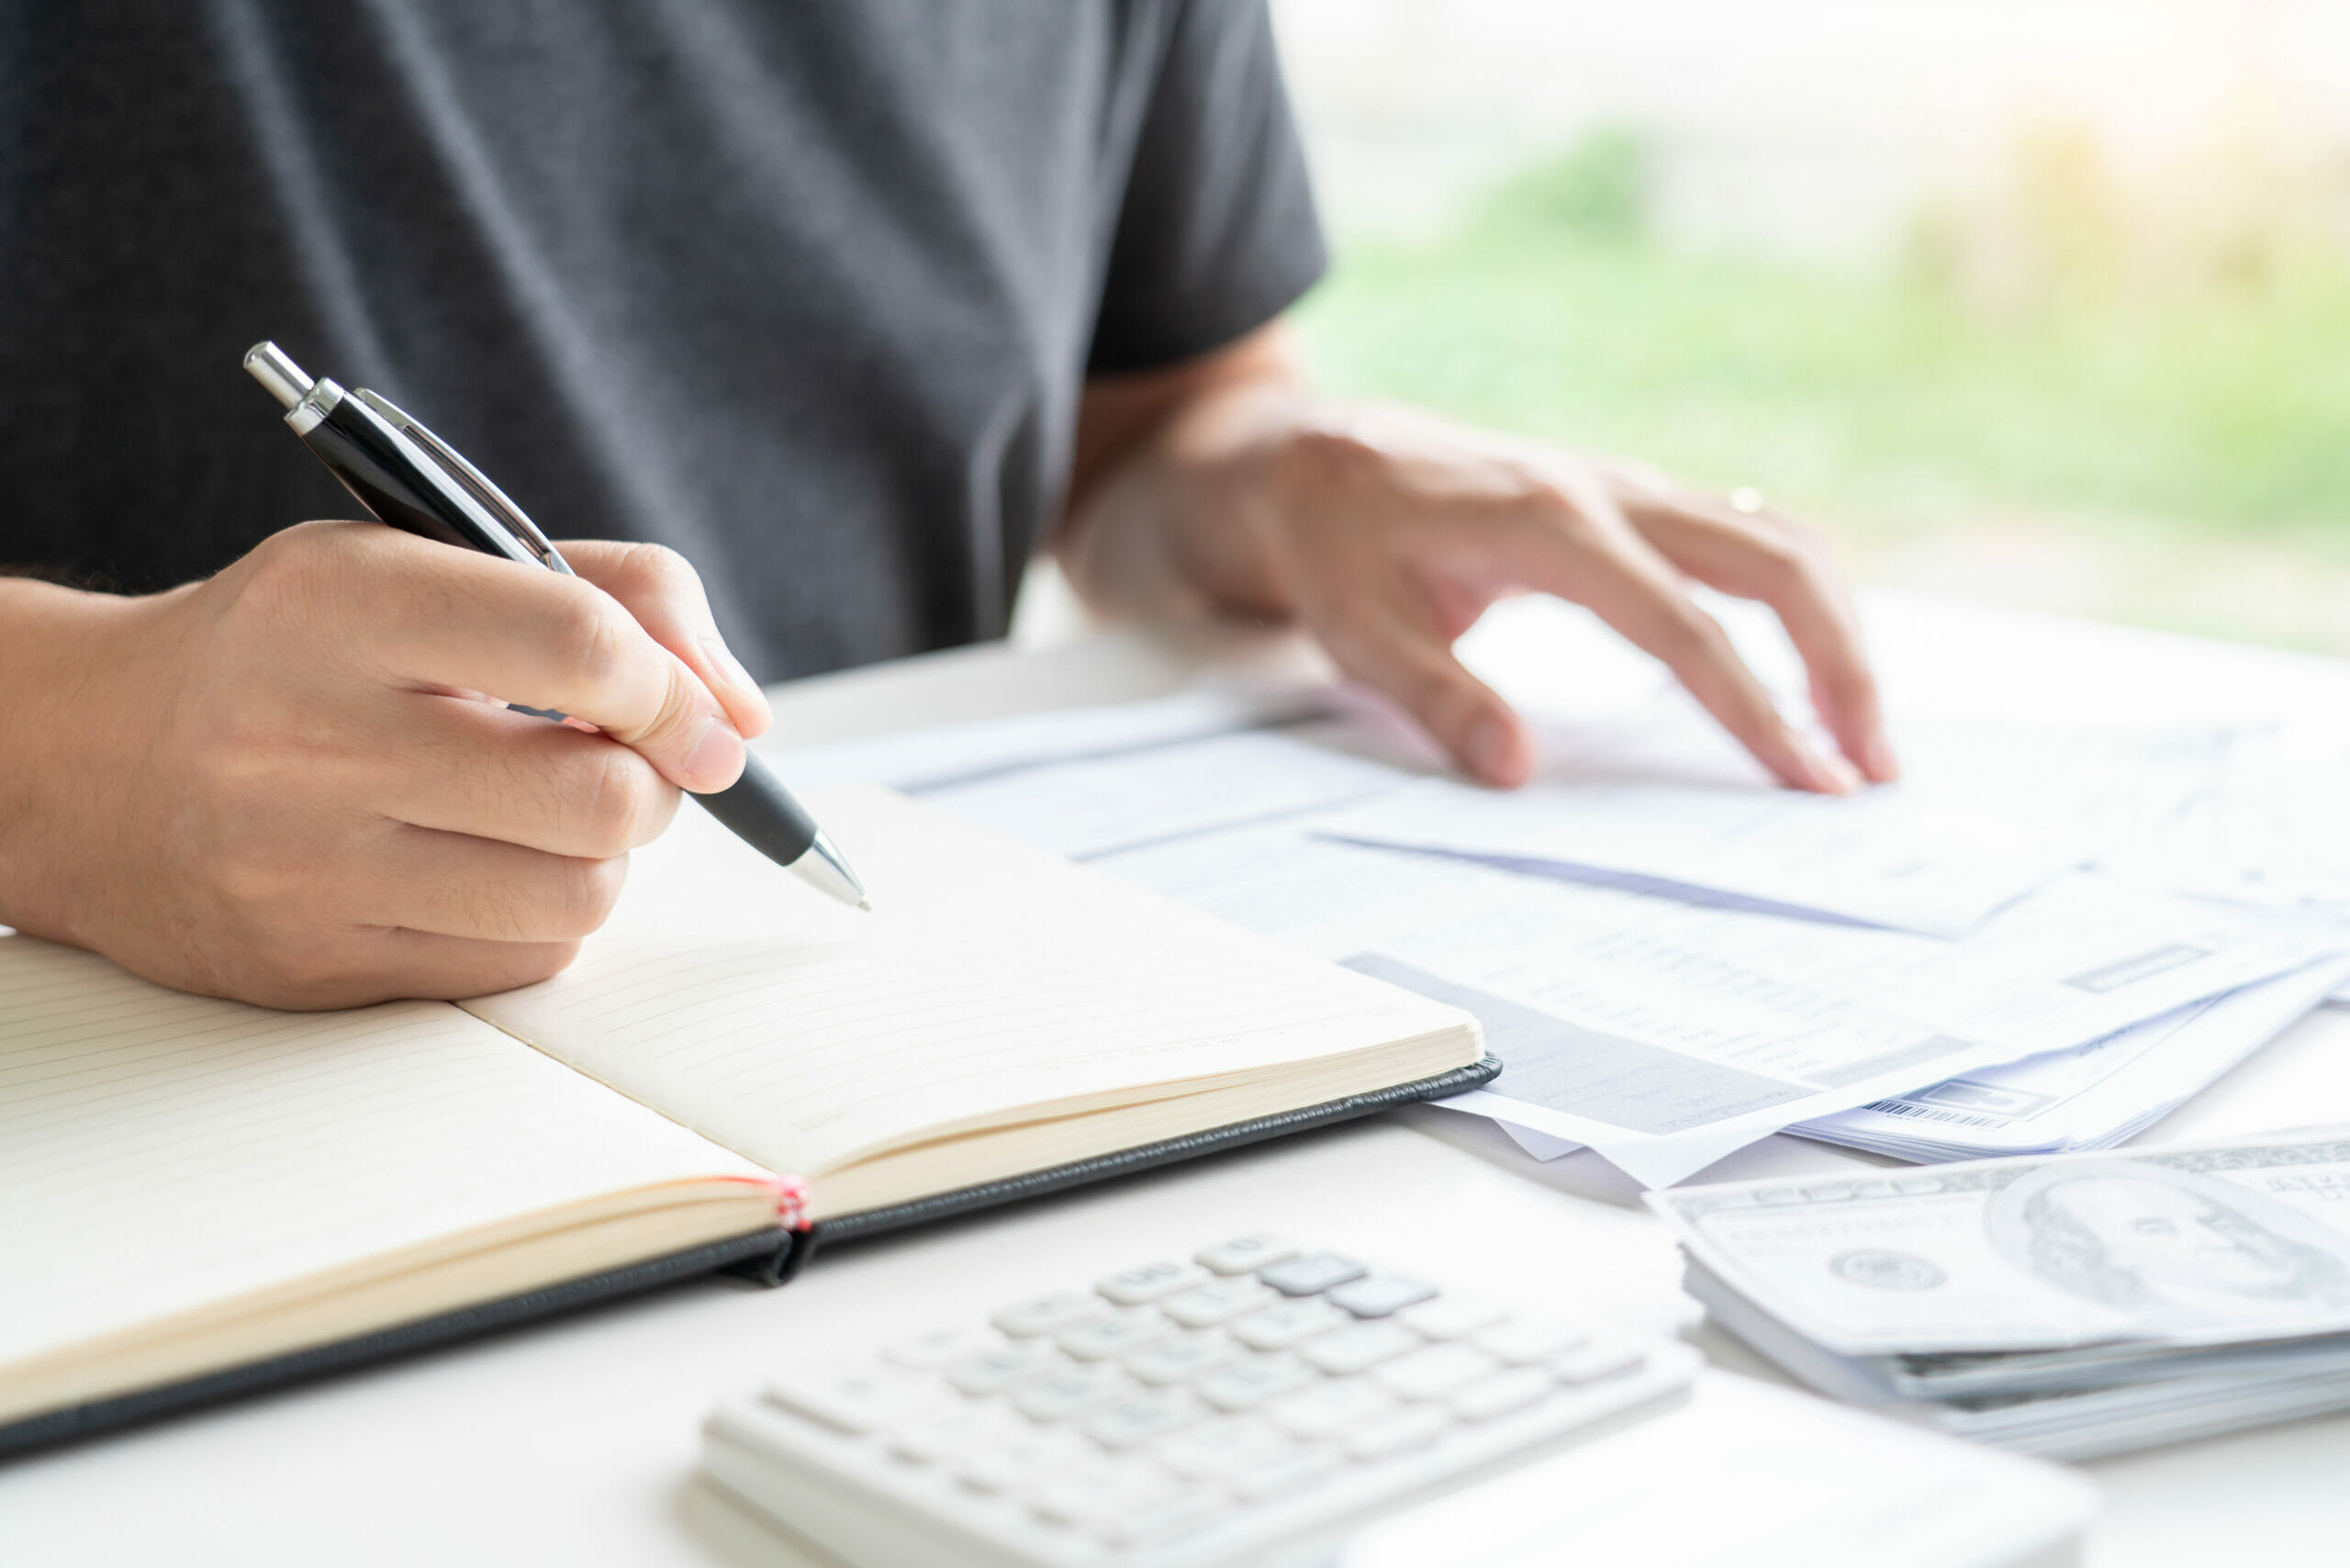 man with checkbook and calculator estimating how much to keep in checking account